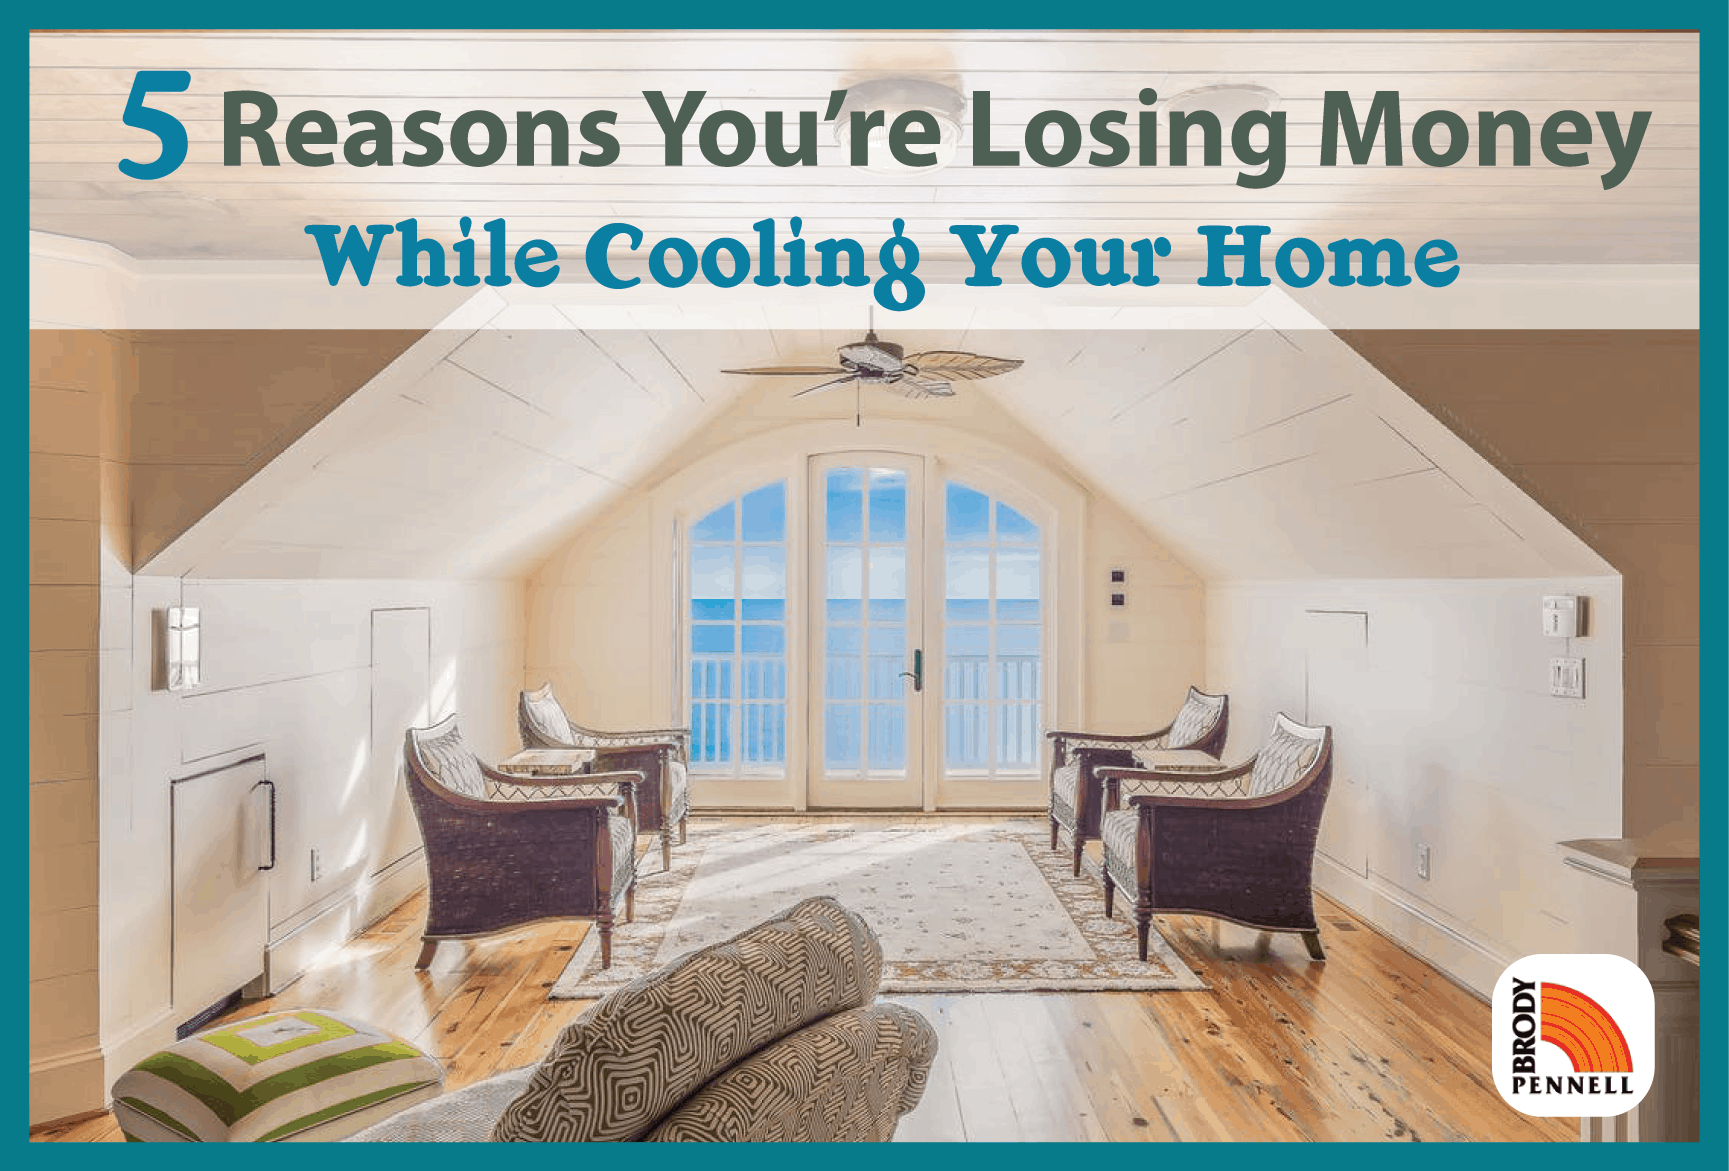 Stop Losing Money While Cooling Home